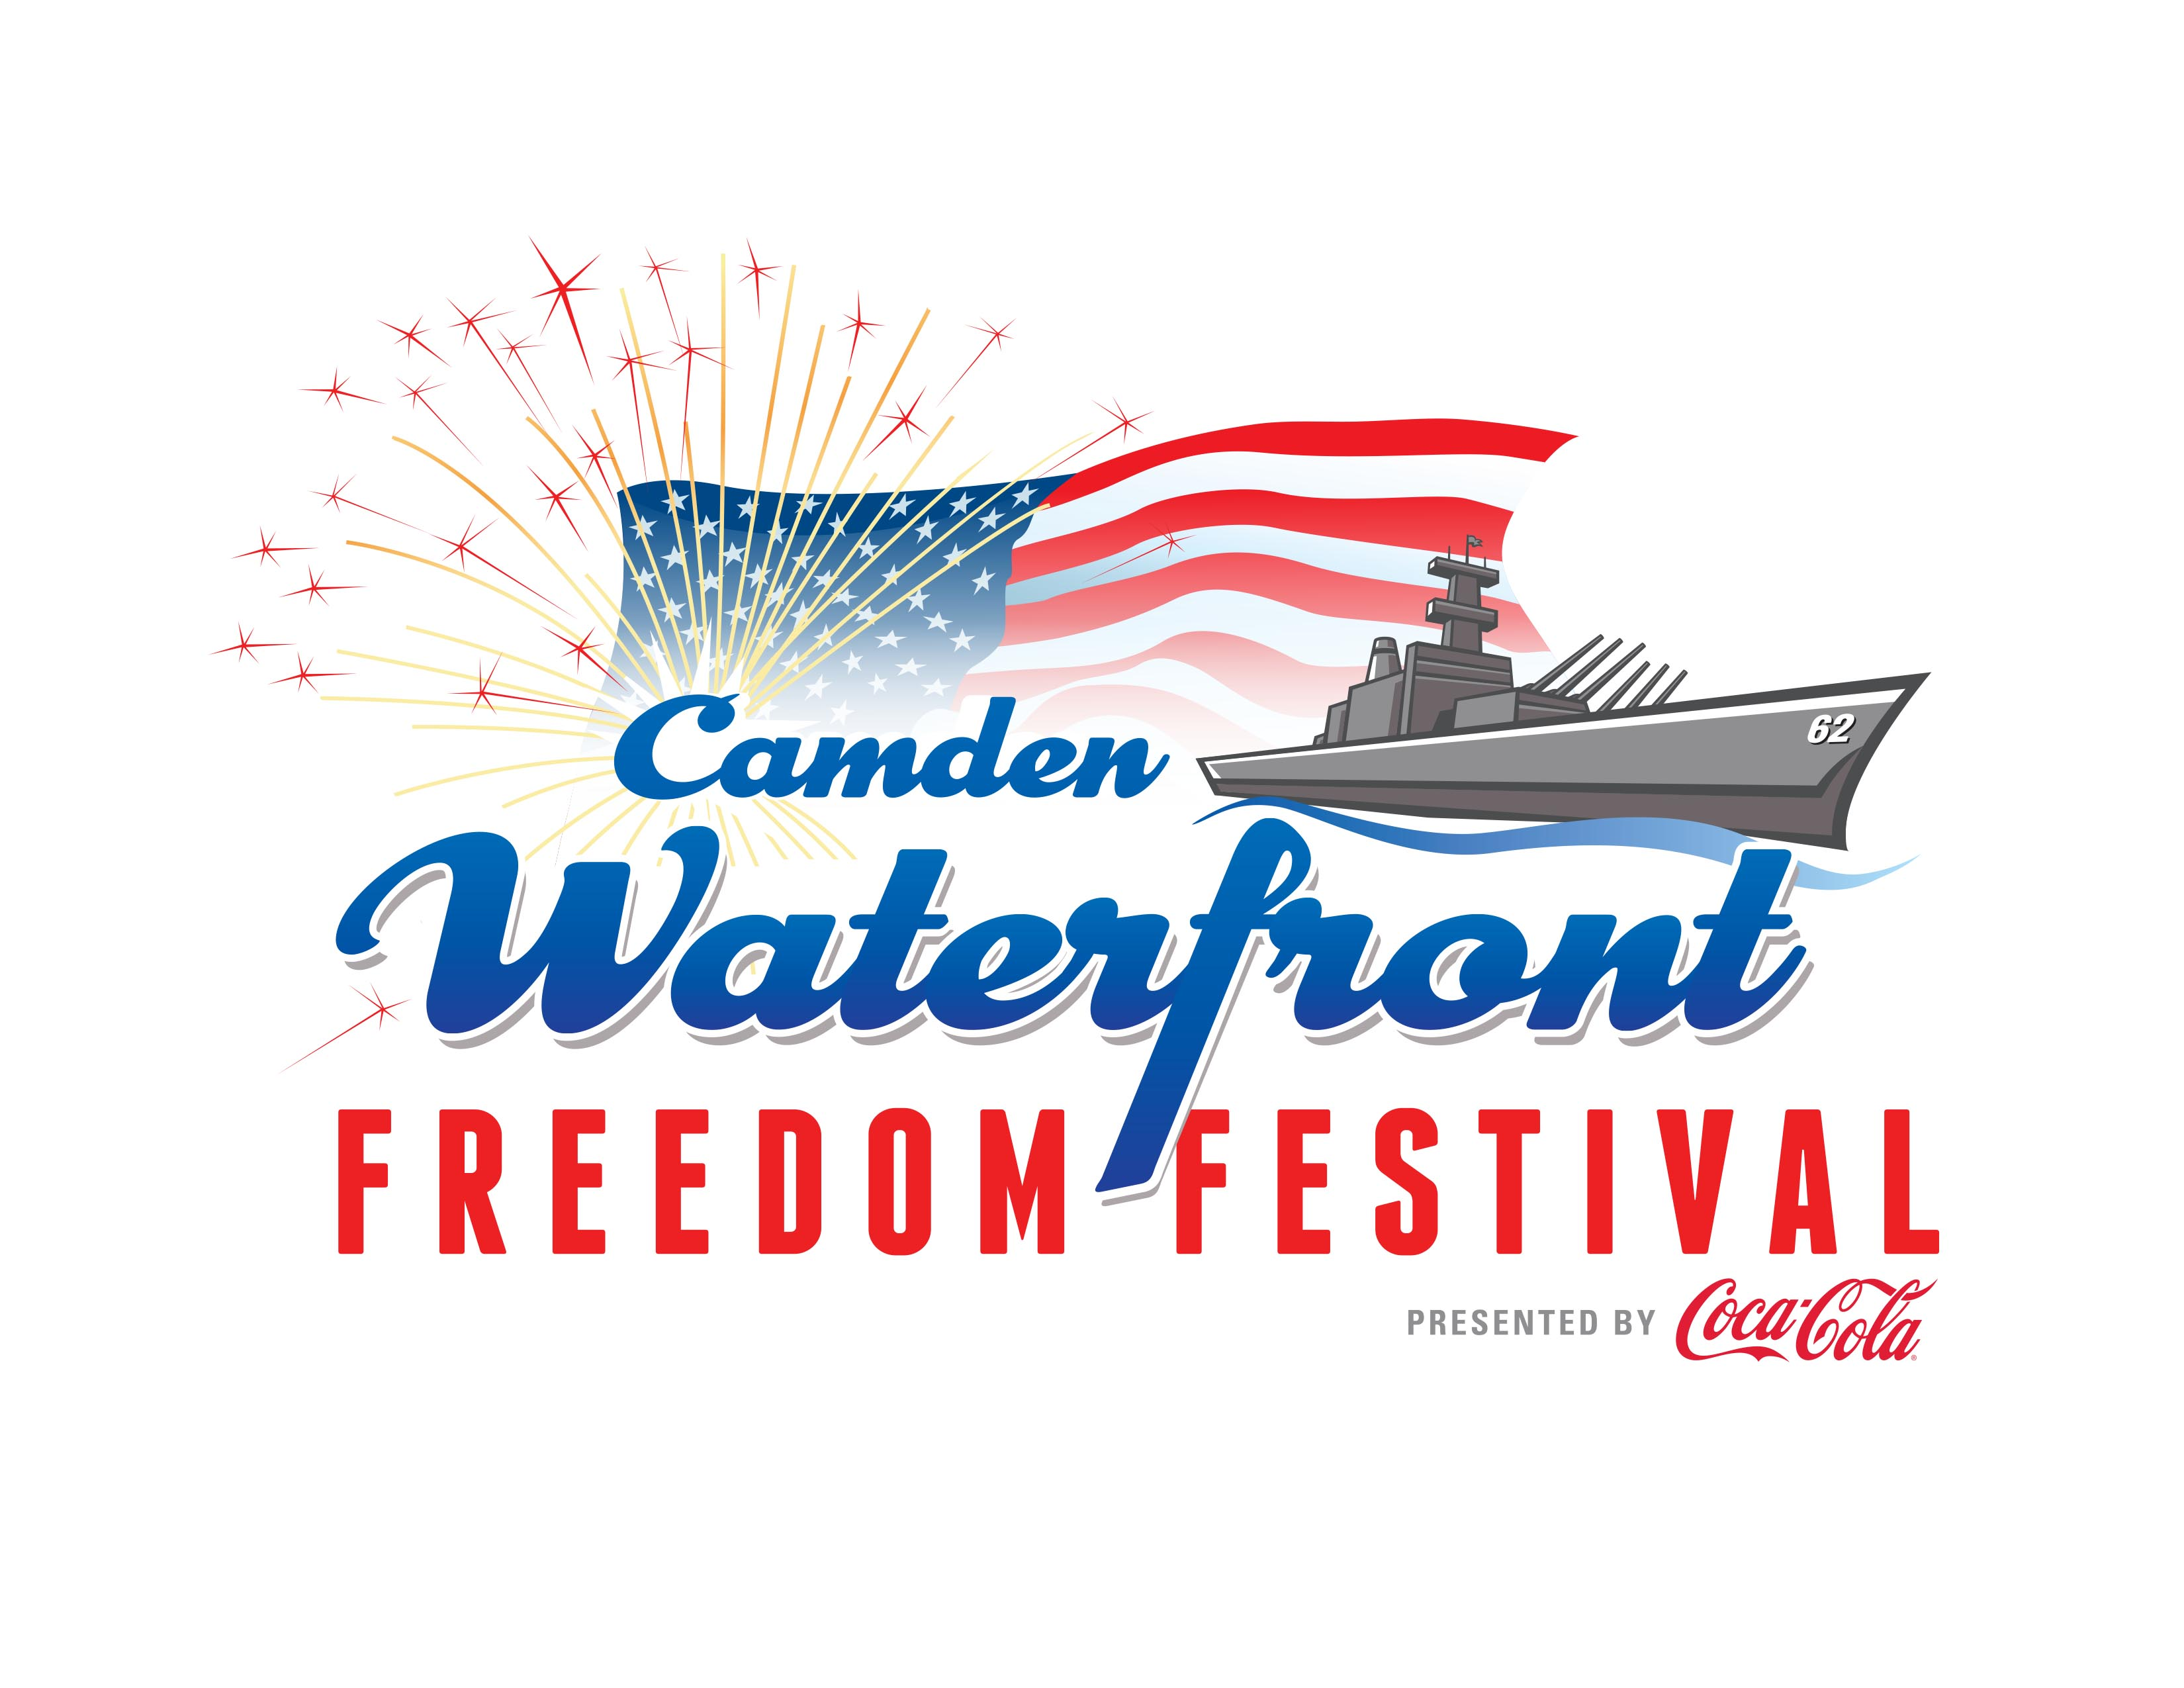 Camden Waterfront To Host Freedom Festival And Adventure